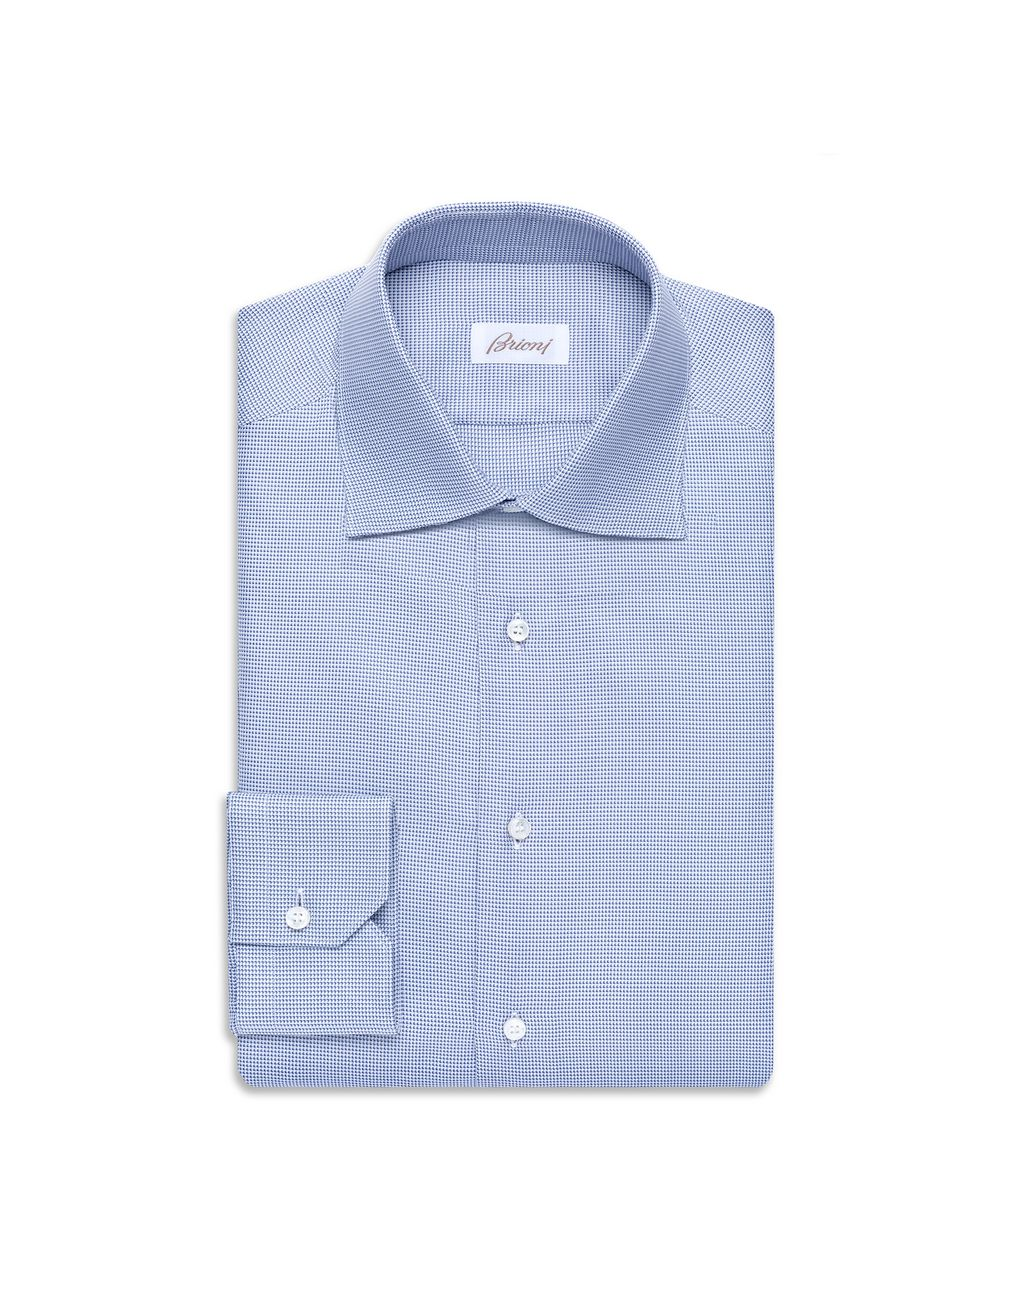 BRIONI Bluette and White Micro -Designed Formal Shirt Formal shirt Man f